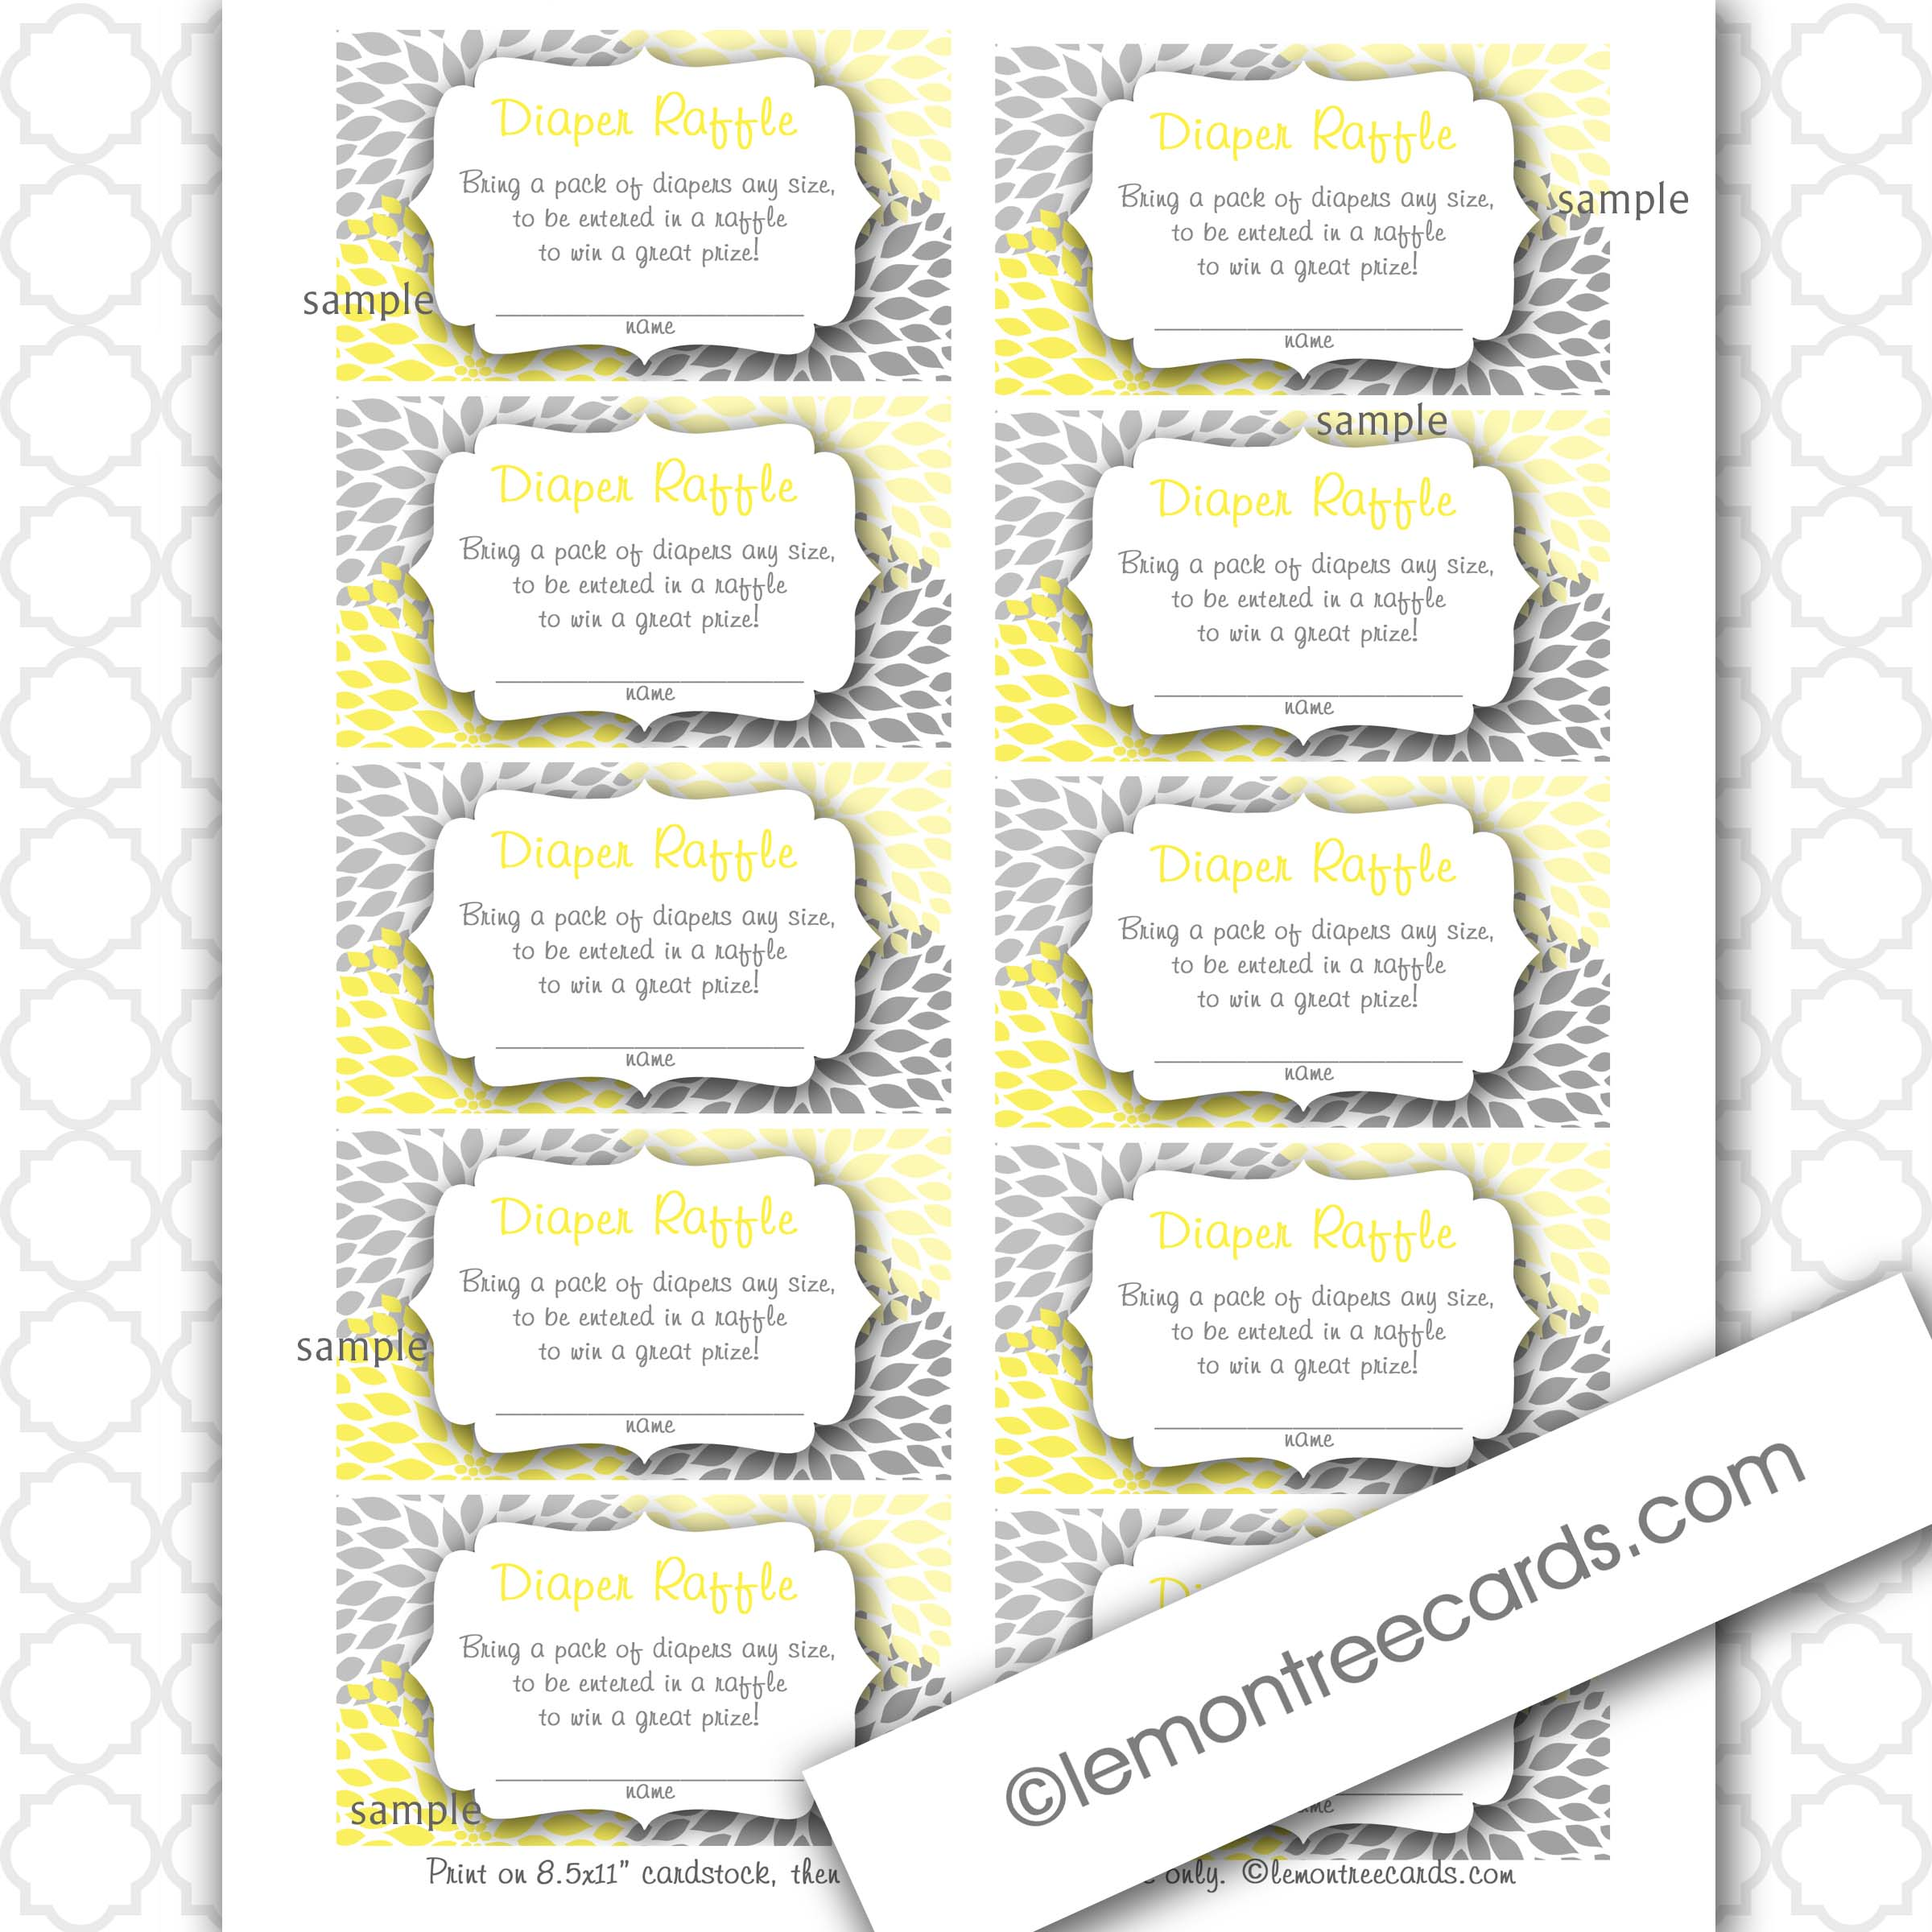 raffle ticket template resume samples writing guides for all raffle ticket template raffle ticket templates microsoft word templates printable diaper raffle tickets diaper raffle